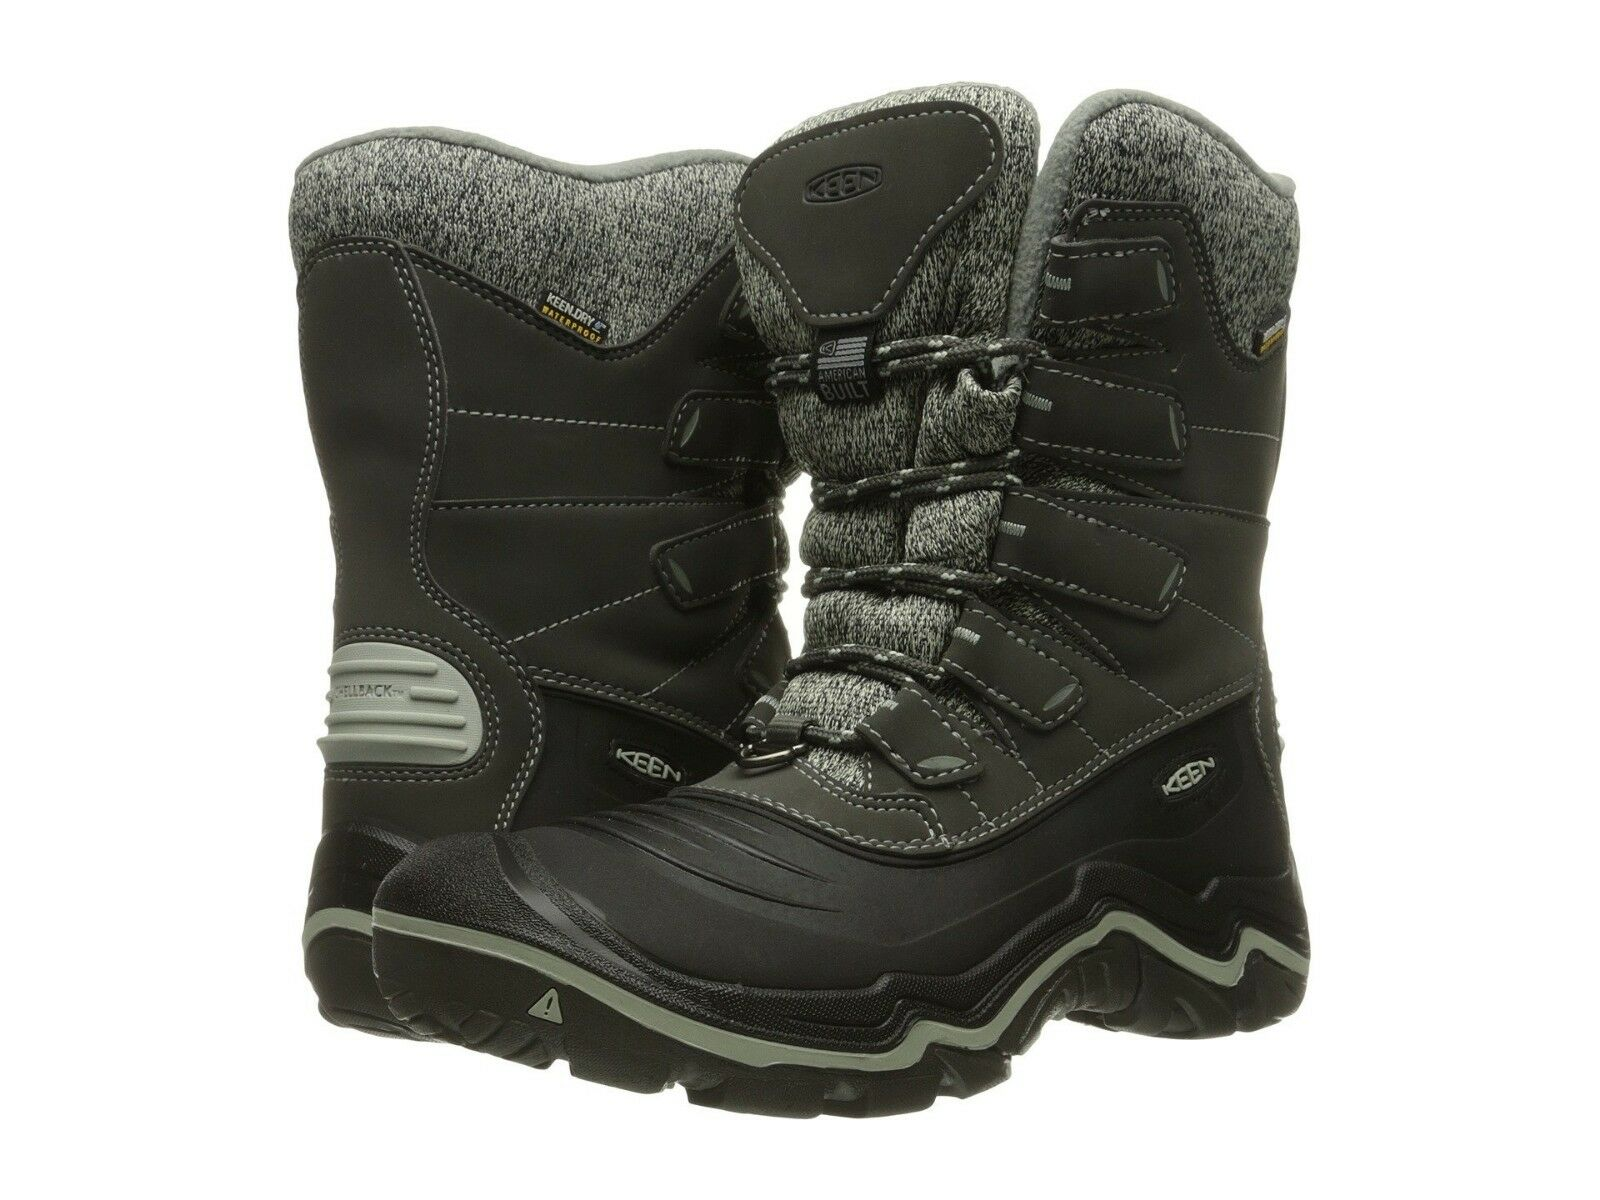 Keen Damenschuhe Durand Polar Shell Snow Lace Up Waterproof Winter Snow Shell Cold Weather Stiefel f7188c